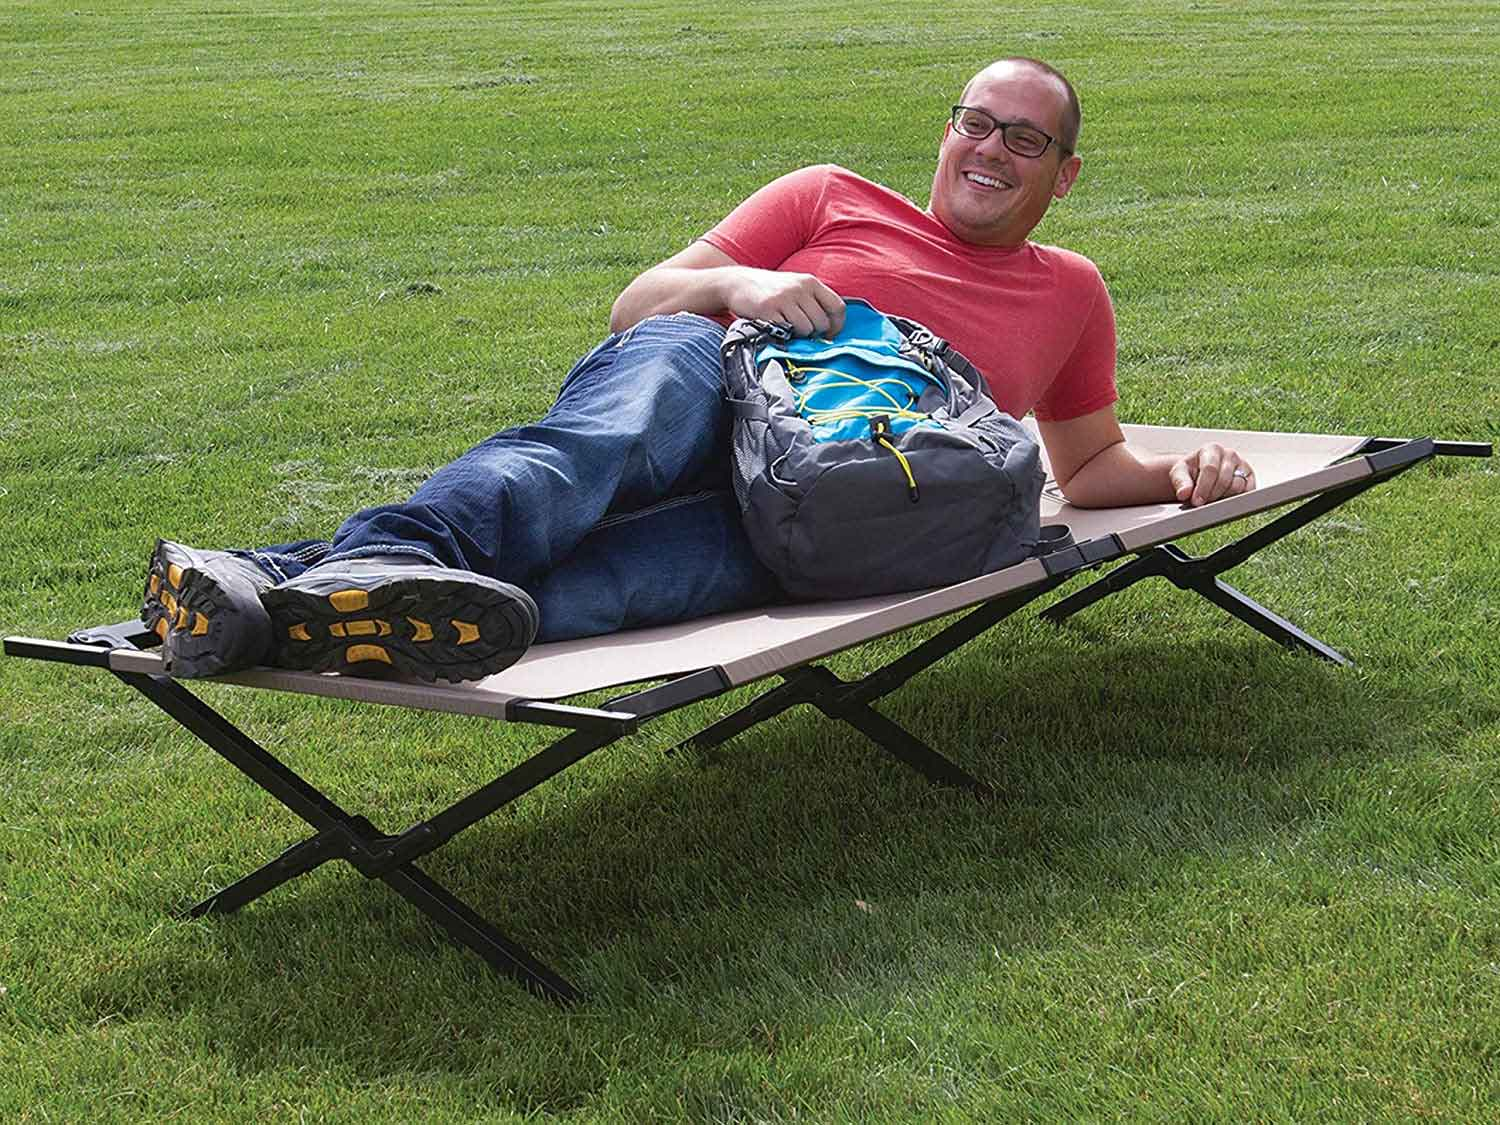 Man lying on a cot on the grass